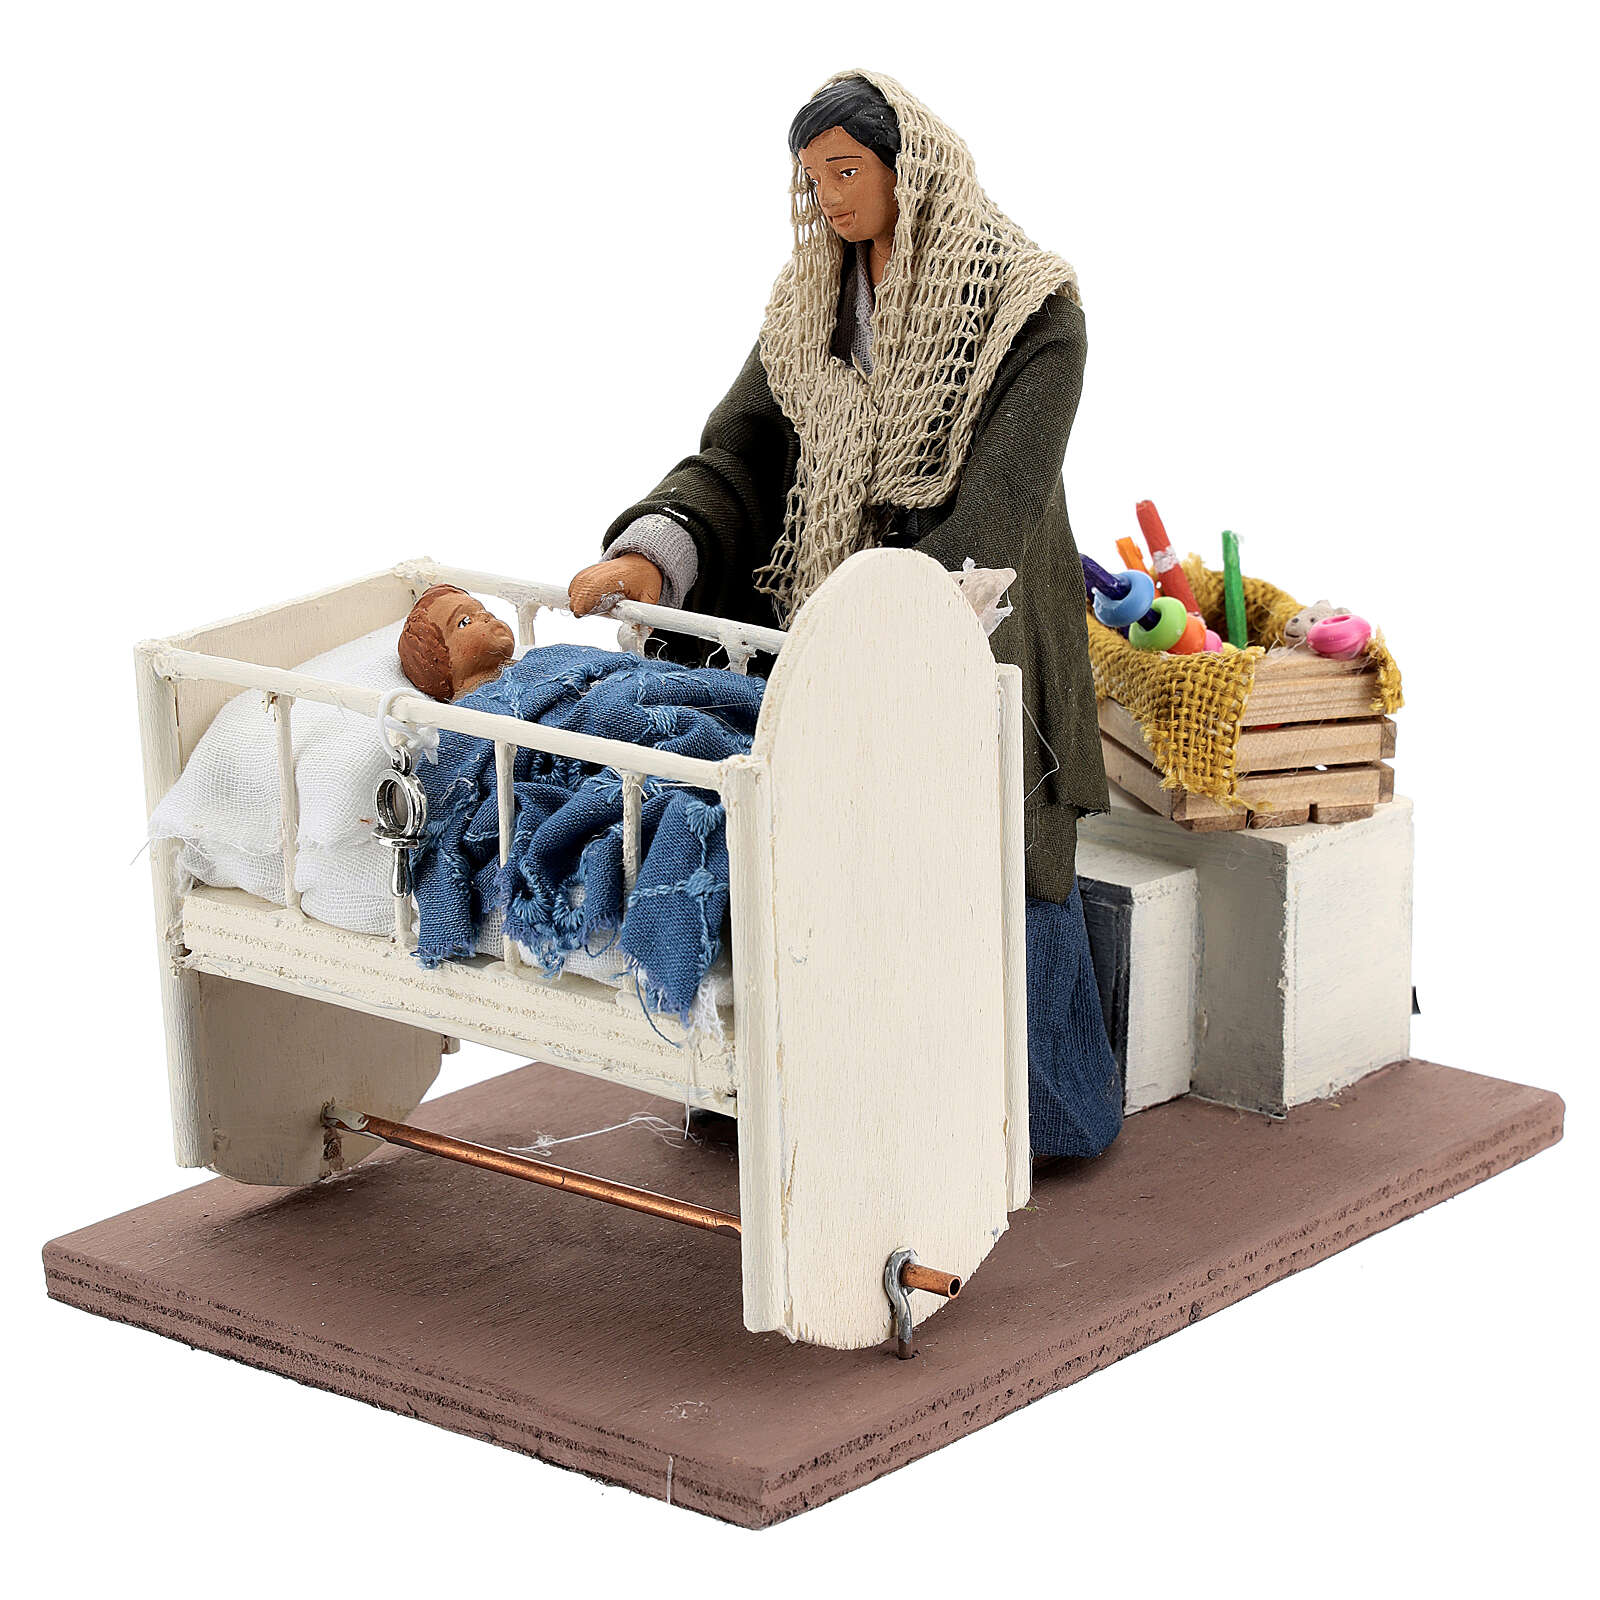 Animated woman with baby in crib 14 cm Neapolitan nativity 4